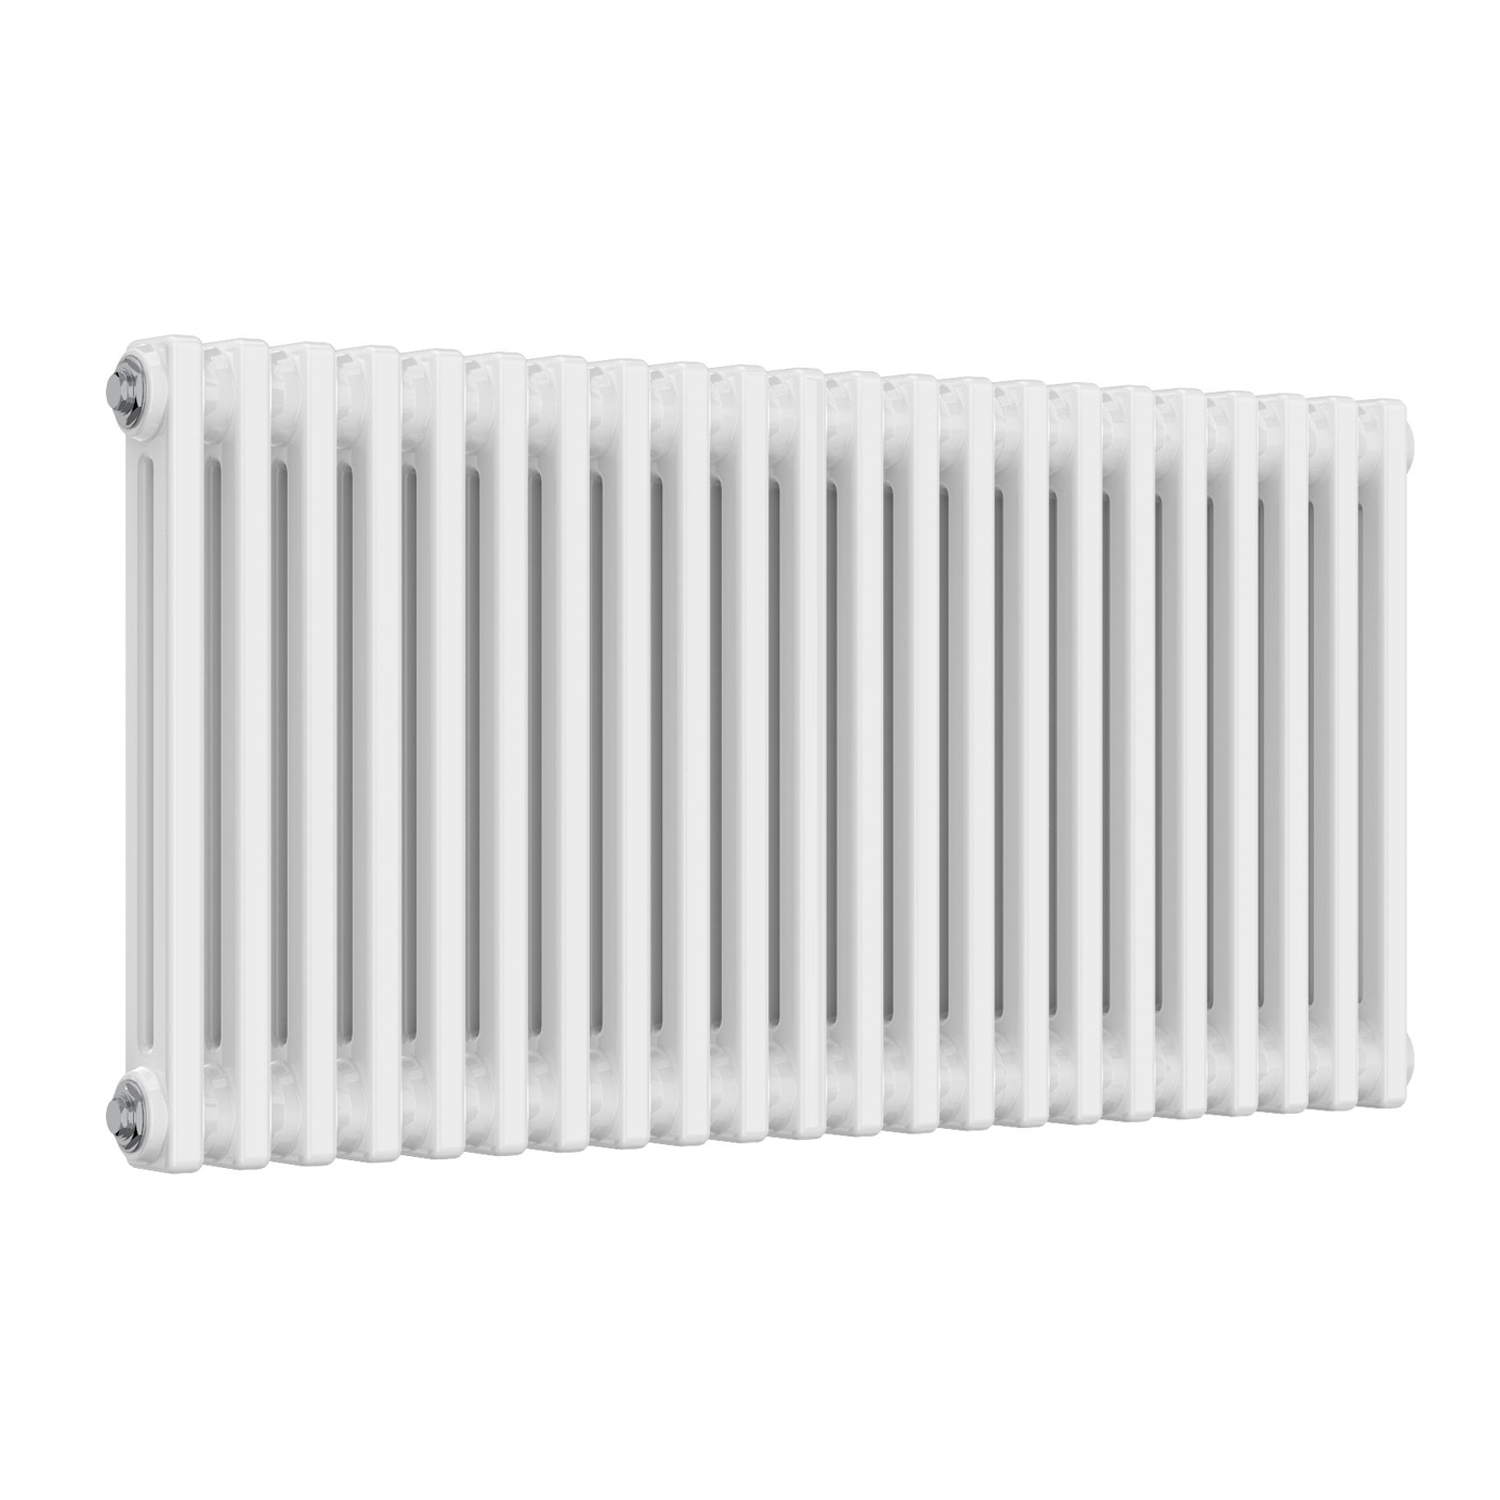 Stelrad Radical Radiator 500mm H x 400mm W Single Convector 10mm Angled TRV